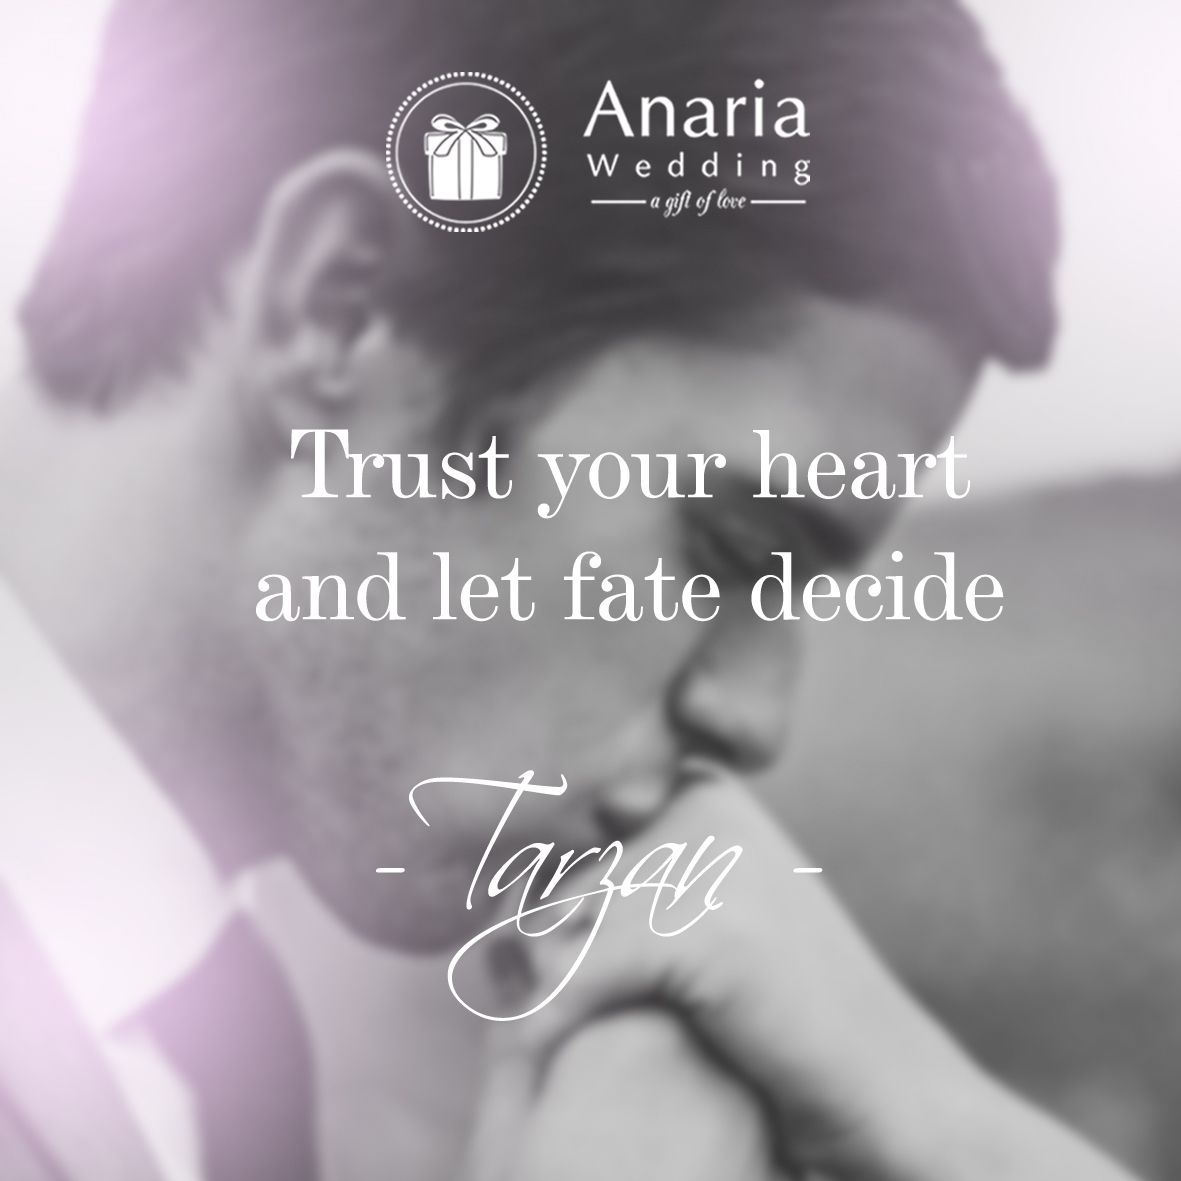 Trust your heart and let fate decide Tarzan quote life believe